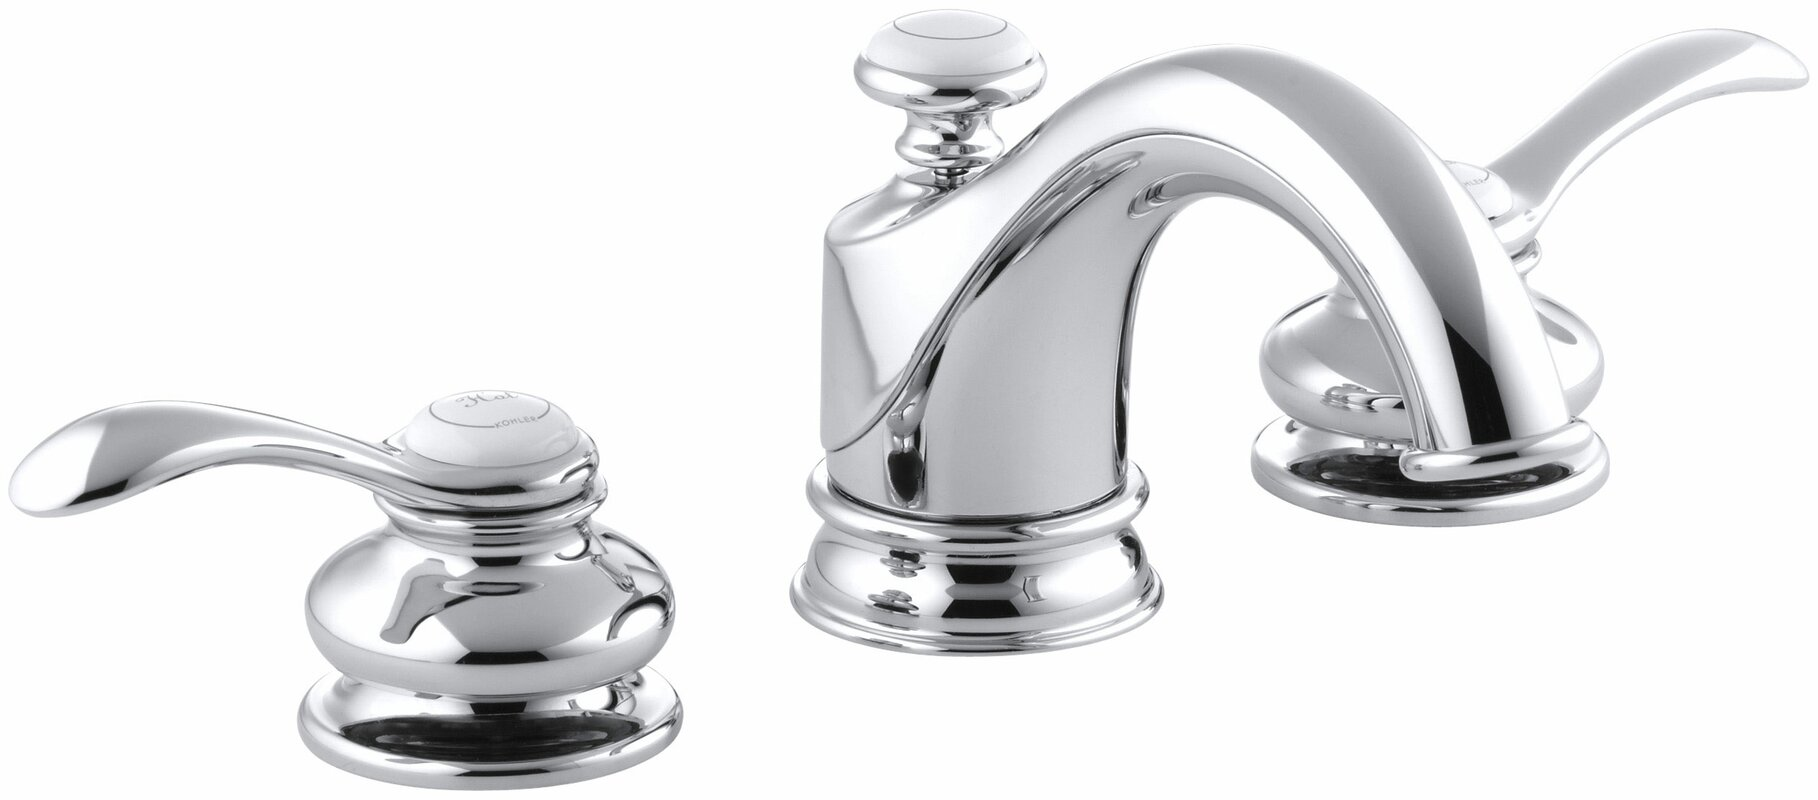 inc handle industries a shelf lavatory faucet product pioneer two back